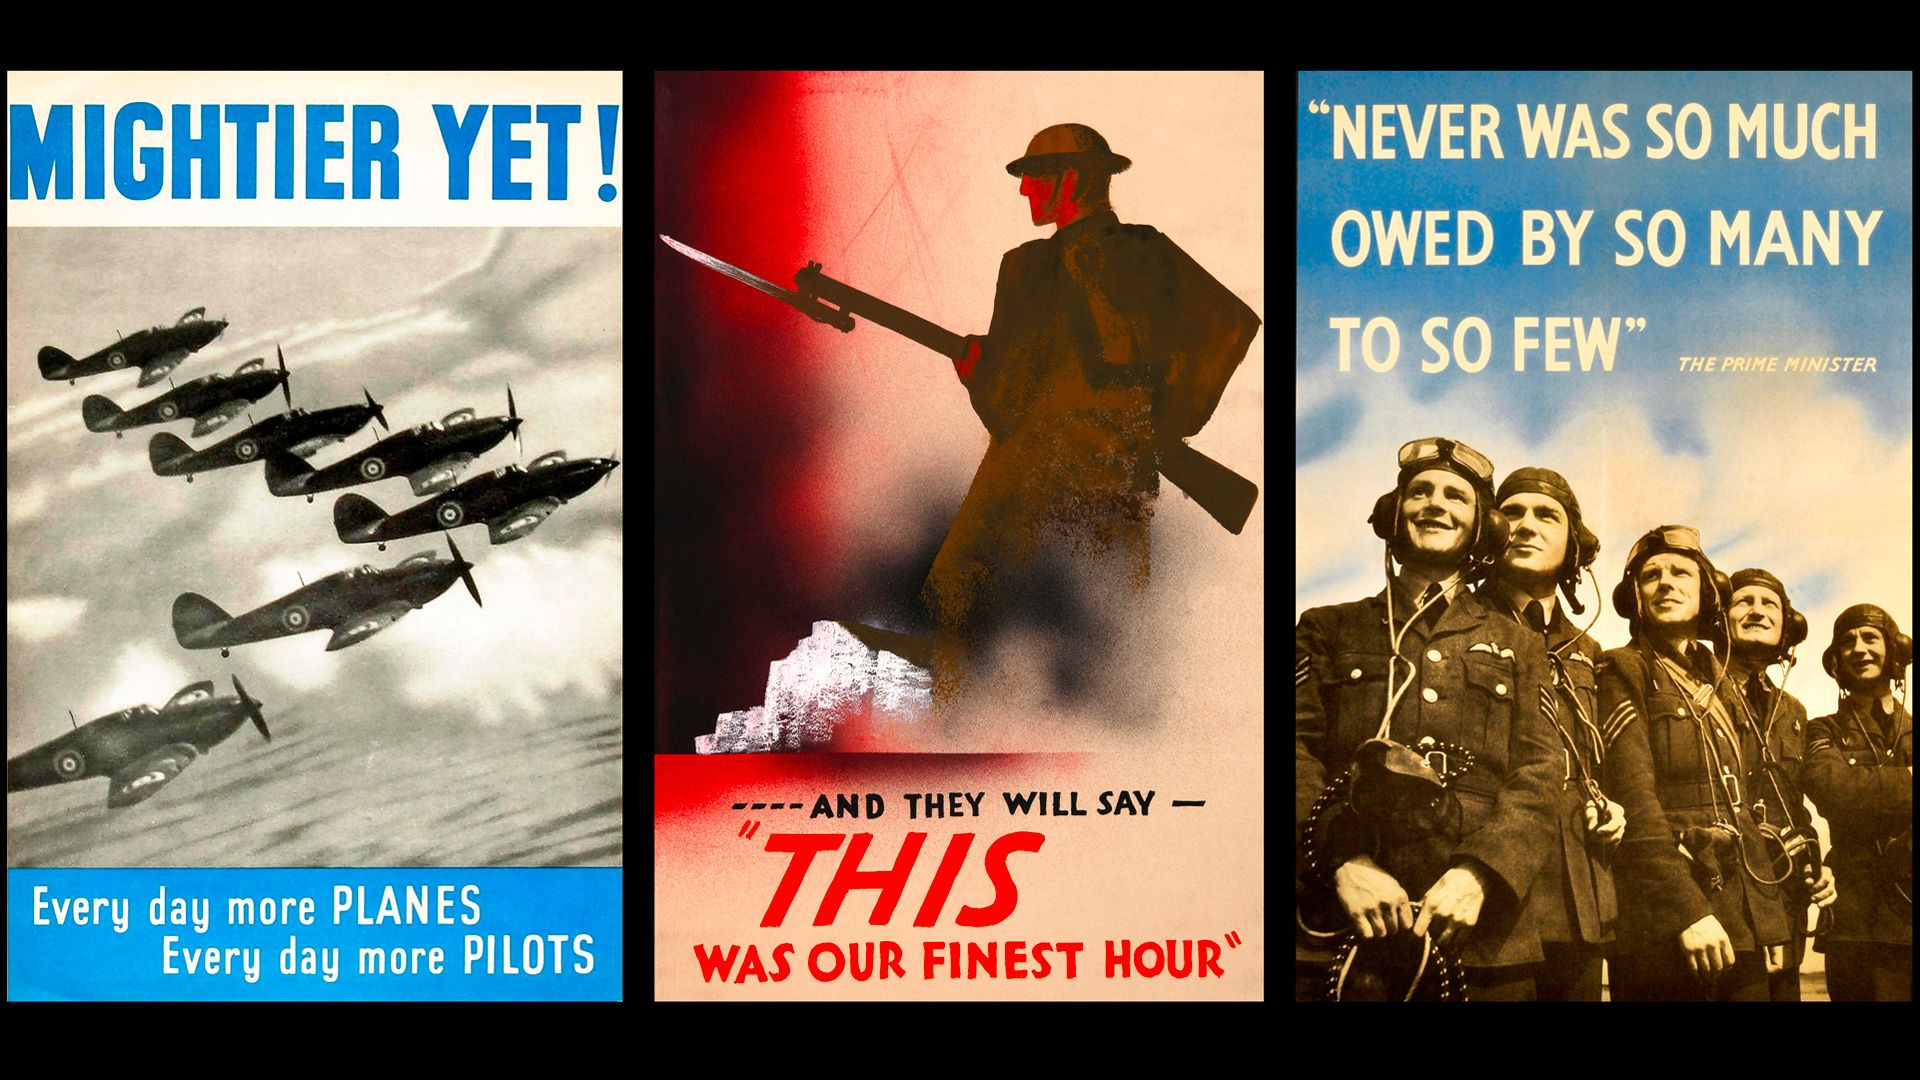 British propaganda posters promoting the RAF and the Battle of Britain in World War II